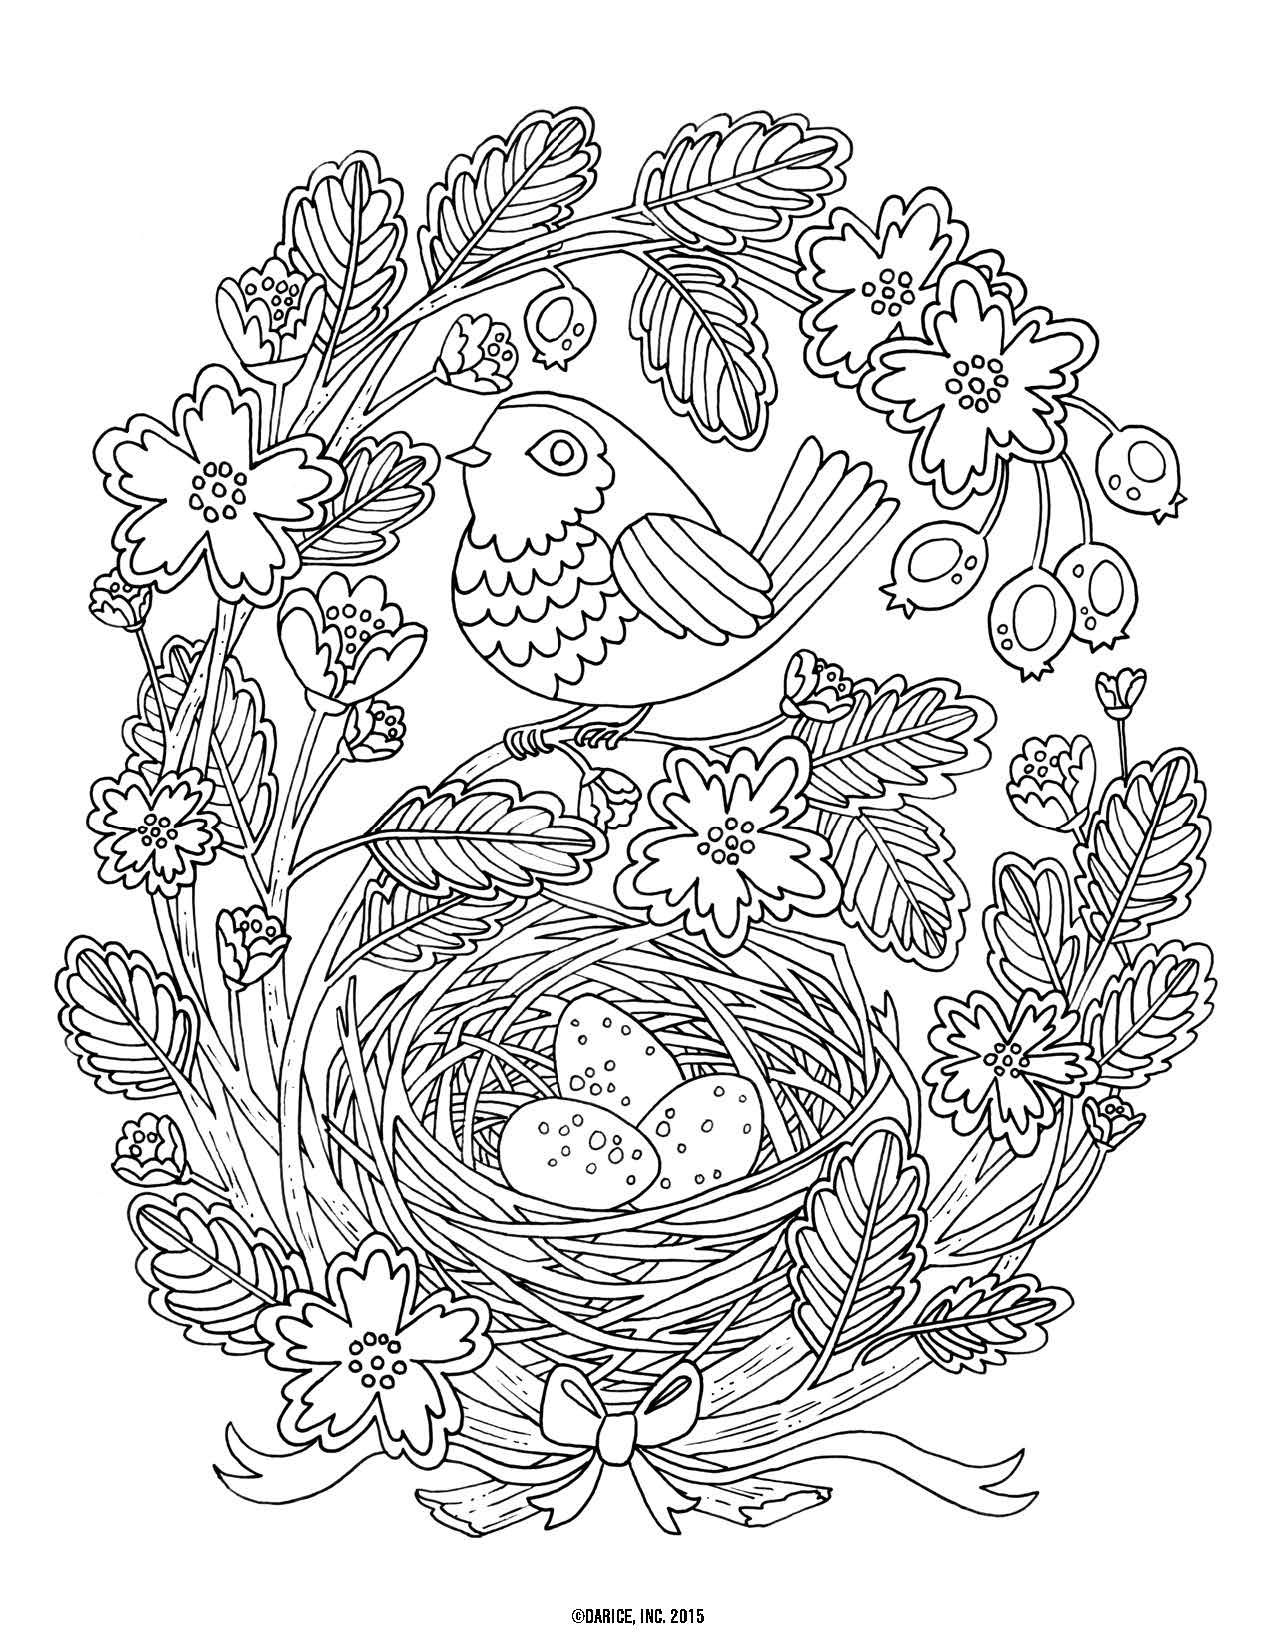 Try out the adult coloring book trend for yourself with our 9 free ...